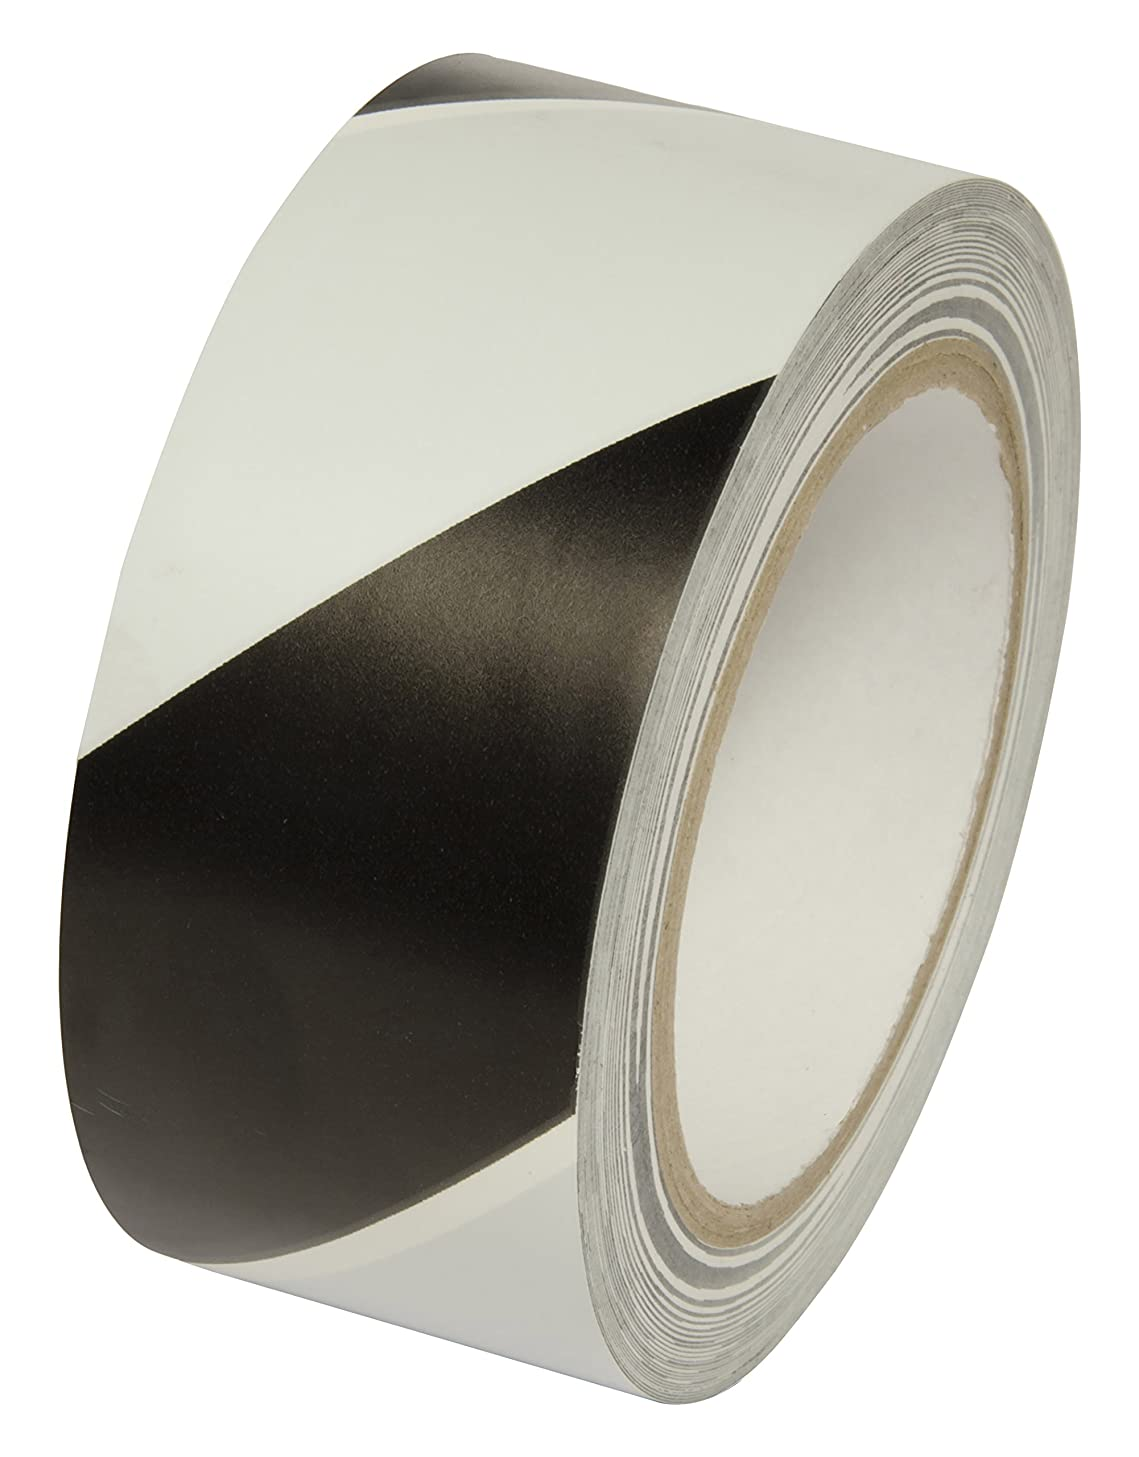 INCOM Manufacturing: Hazard Warning Conformable Tape, 2